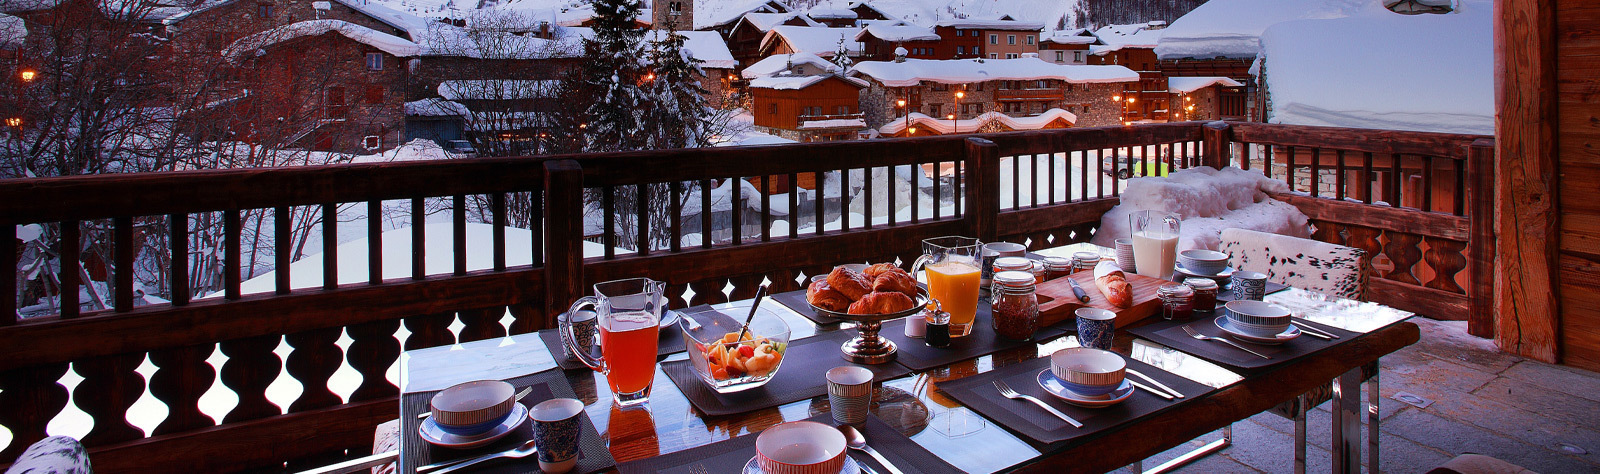 Gstaad accommodations